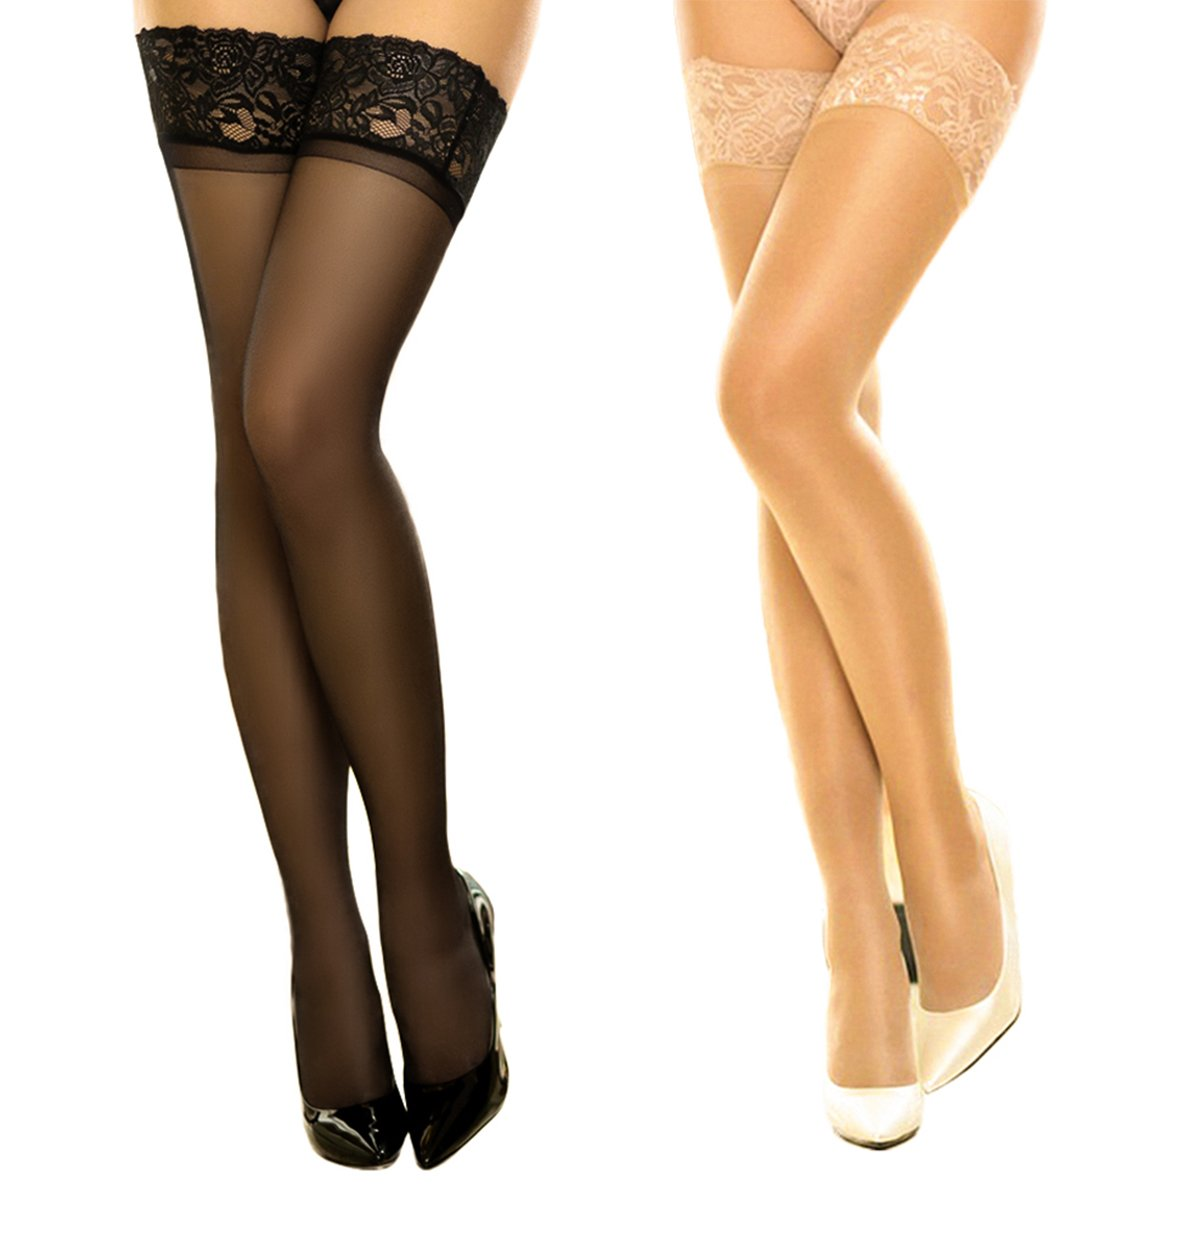 2 Pair Women's Thigh High Stockings Lace Sheer Silky Tights Silicone Stay Up Nylon Pantyhose for DancMolly (Black+Nude, A/B)